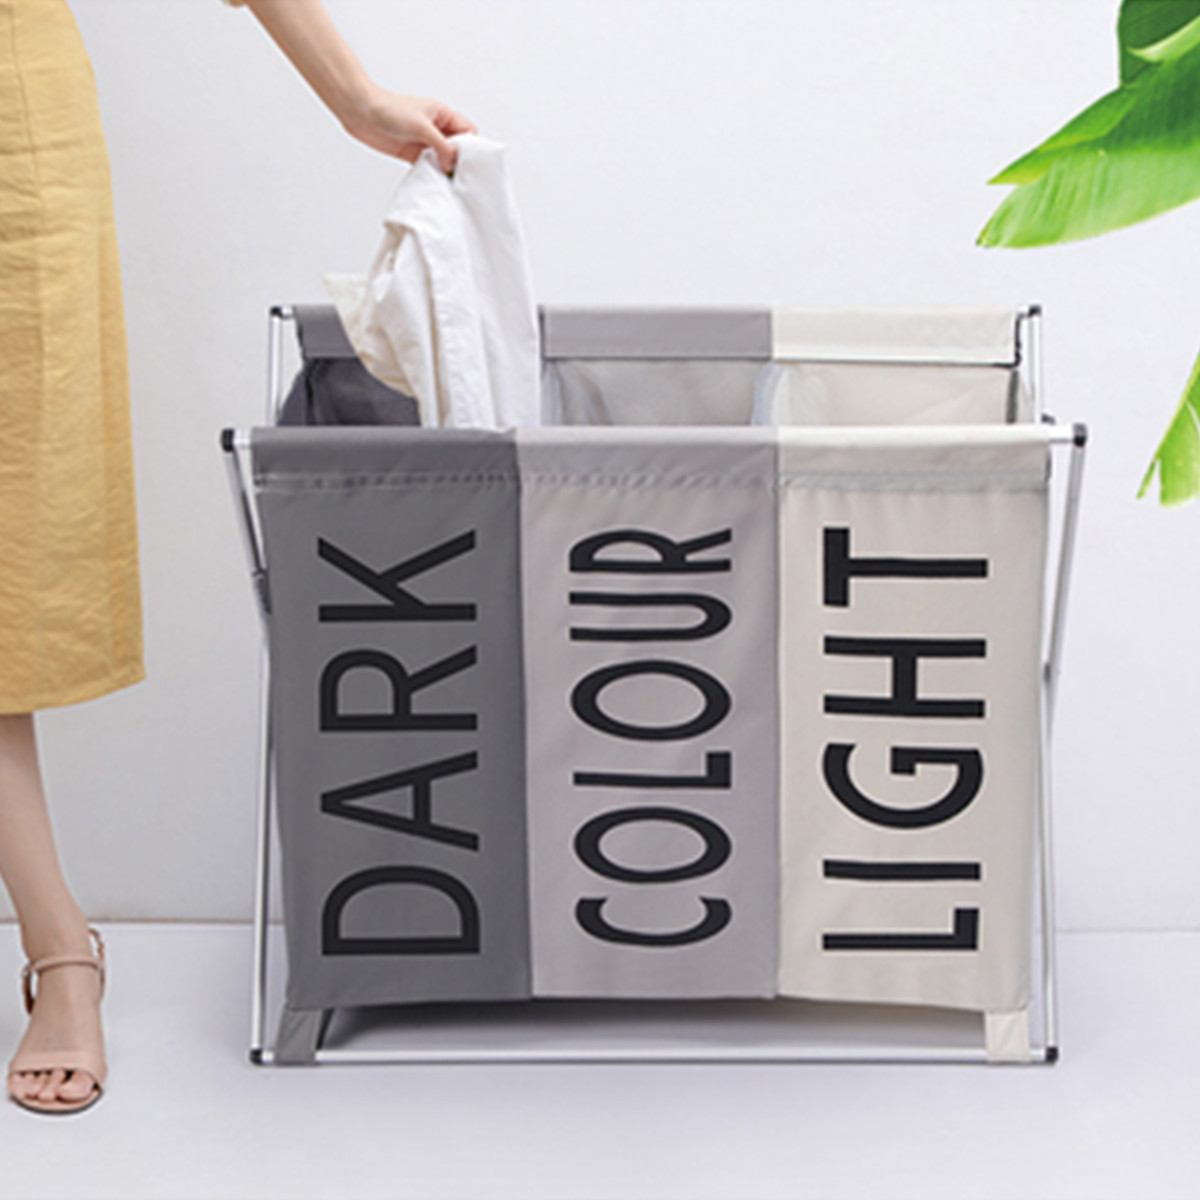 X-shape Foldable Dirty Laundry Basket Organizer Collapsible 3 Grids Home Laundry Hamper Sorter Waterproof Laundry Storage Baskets